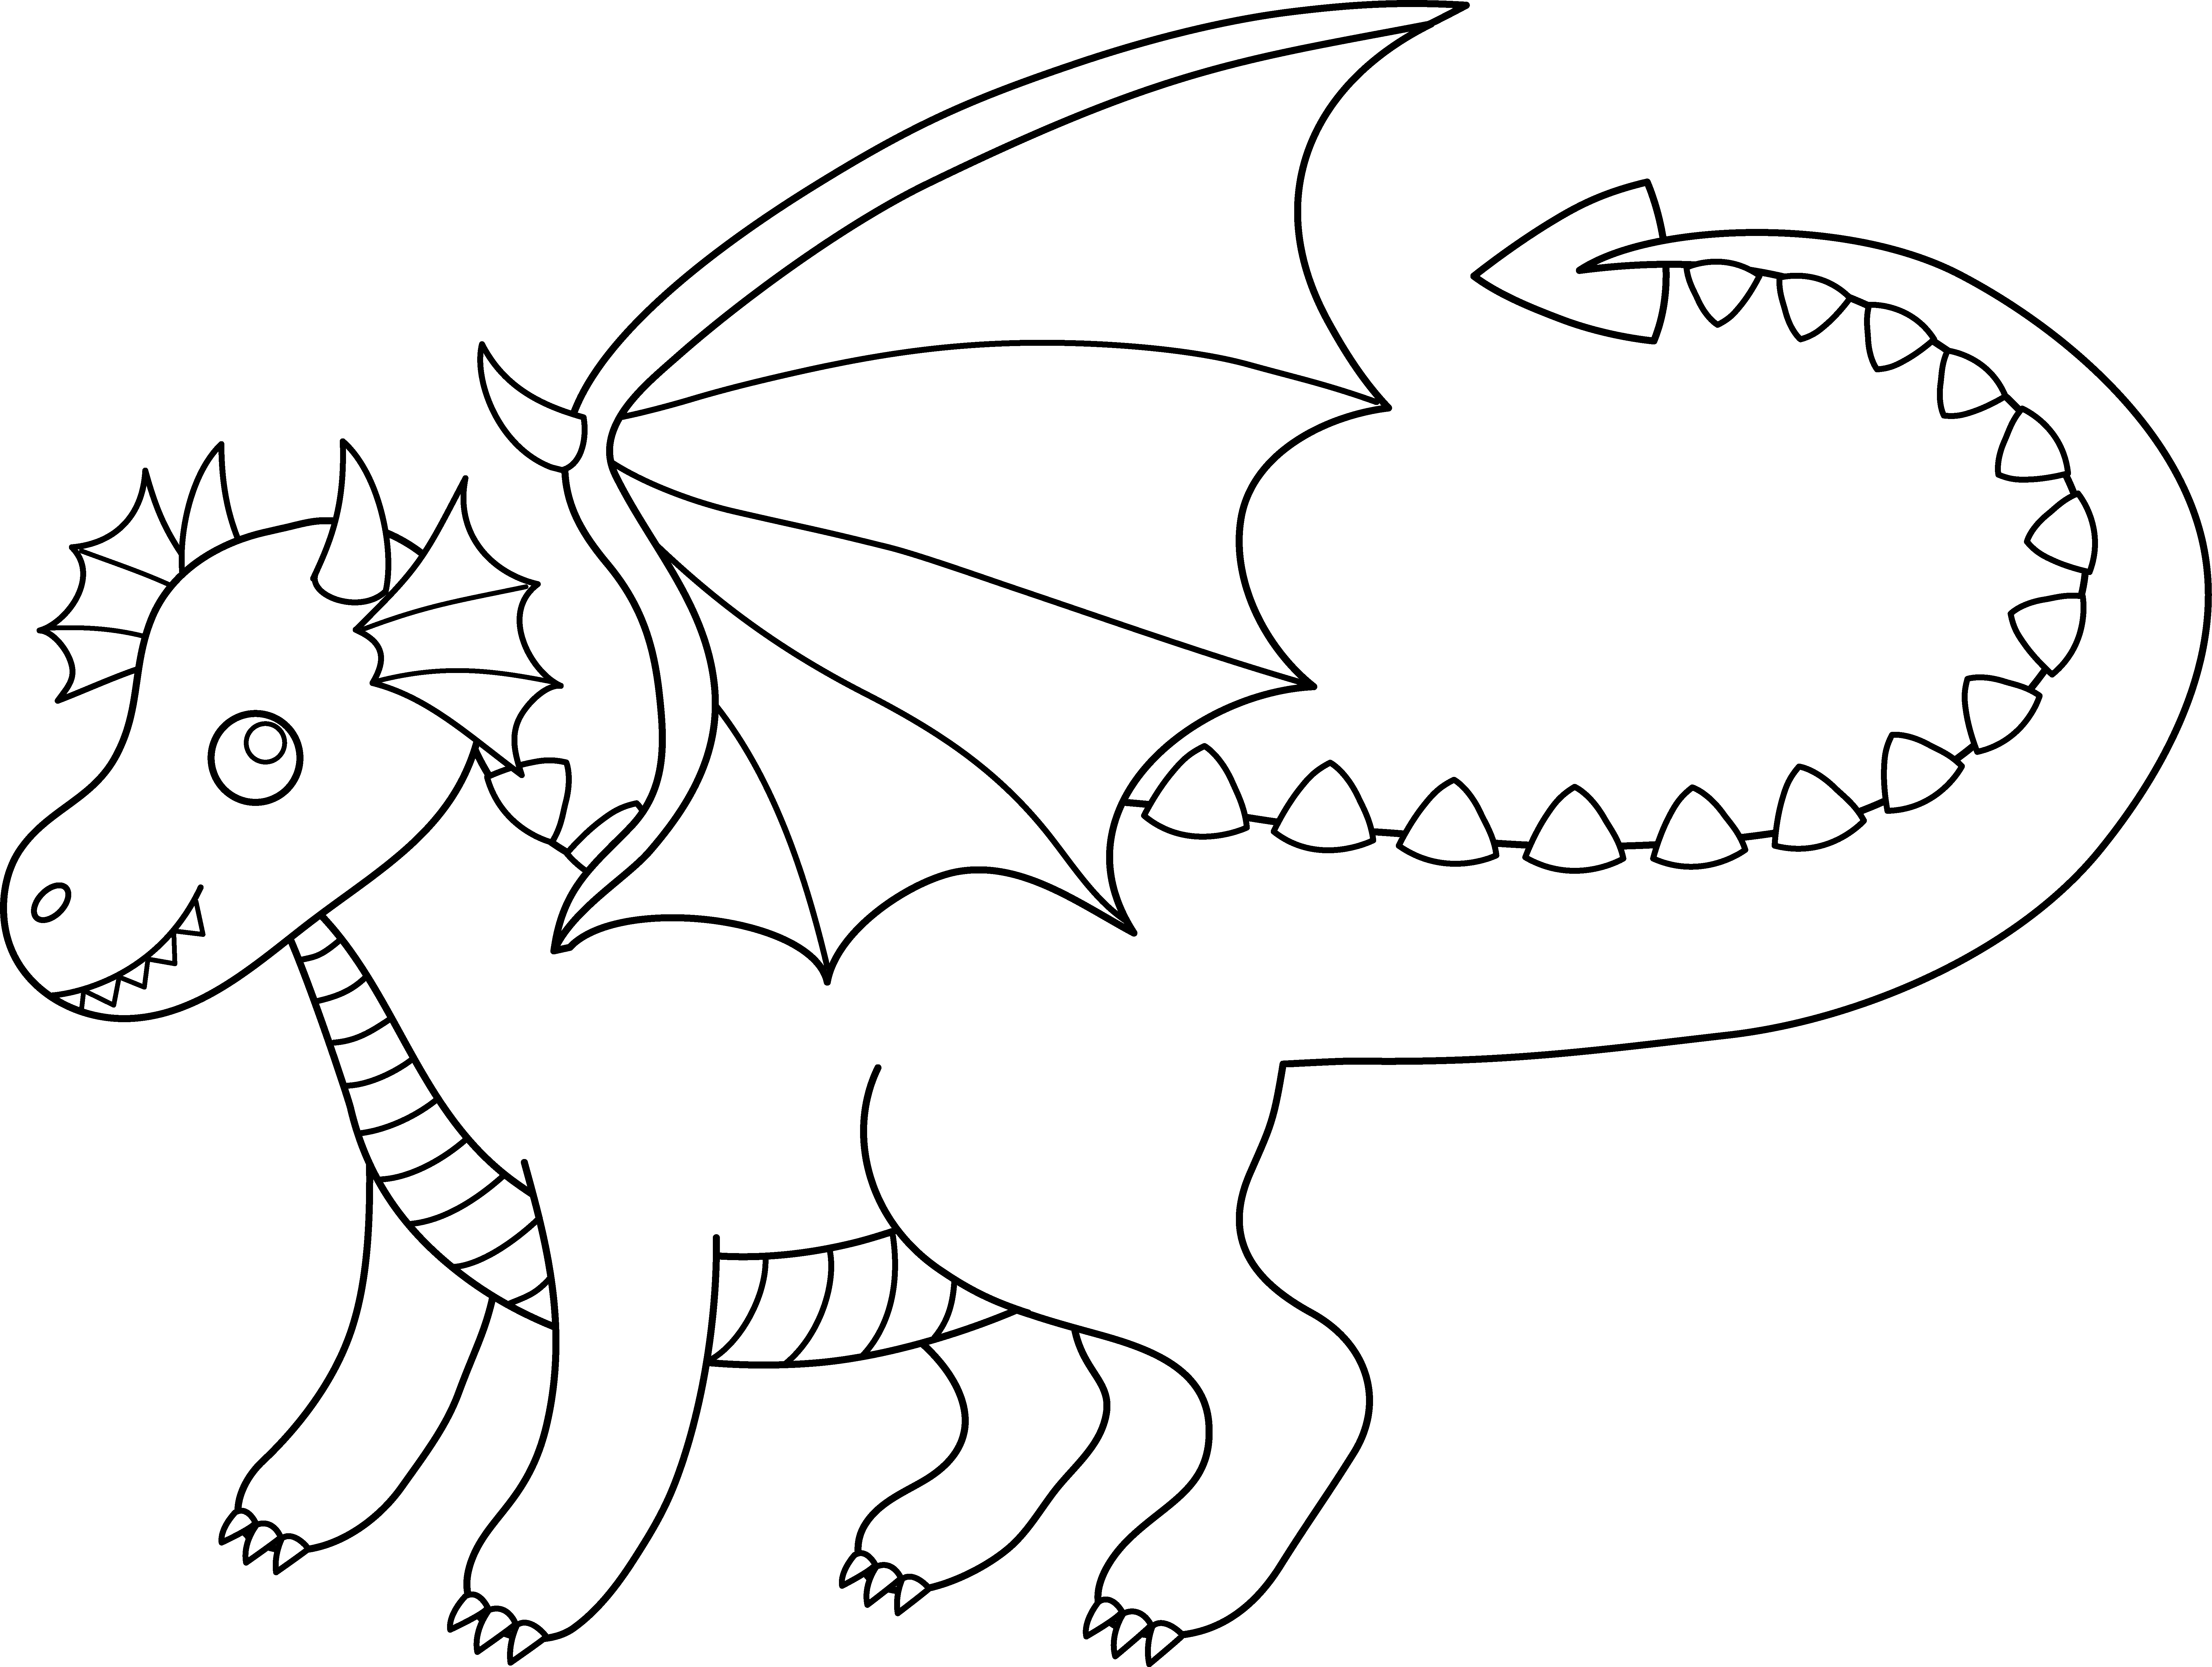 Cute colorable dragon free. Excavator clipart black and white